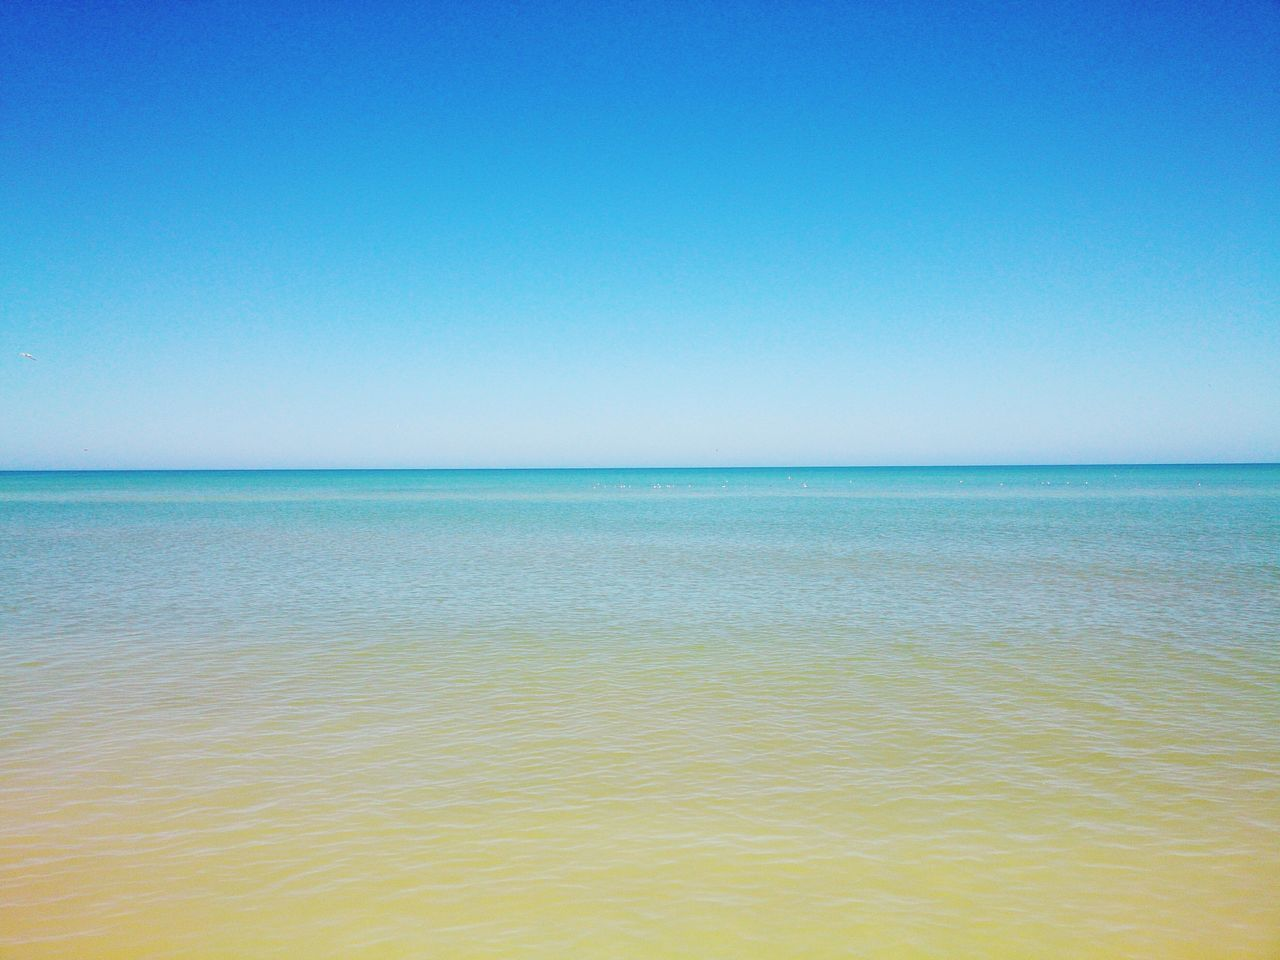 Straight line. Yucatan Mexico No People Blue Sky Beauty In Nature Landscape Mobile Photography Xperia ZL Seascape Sea And Sky Beach Photography Day Nature Amazing Beach Betterlandscapes